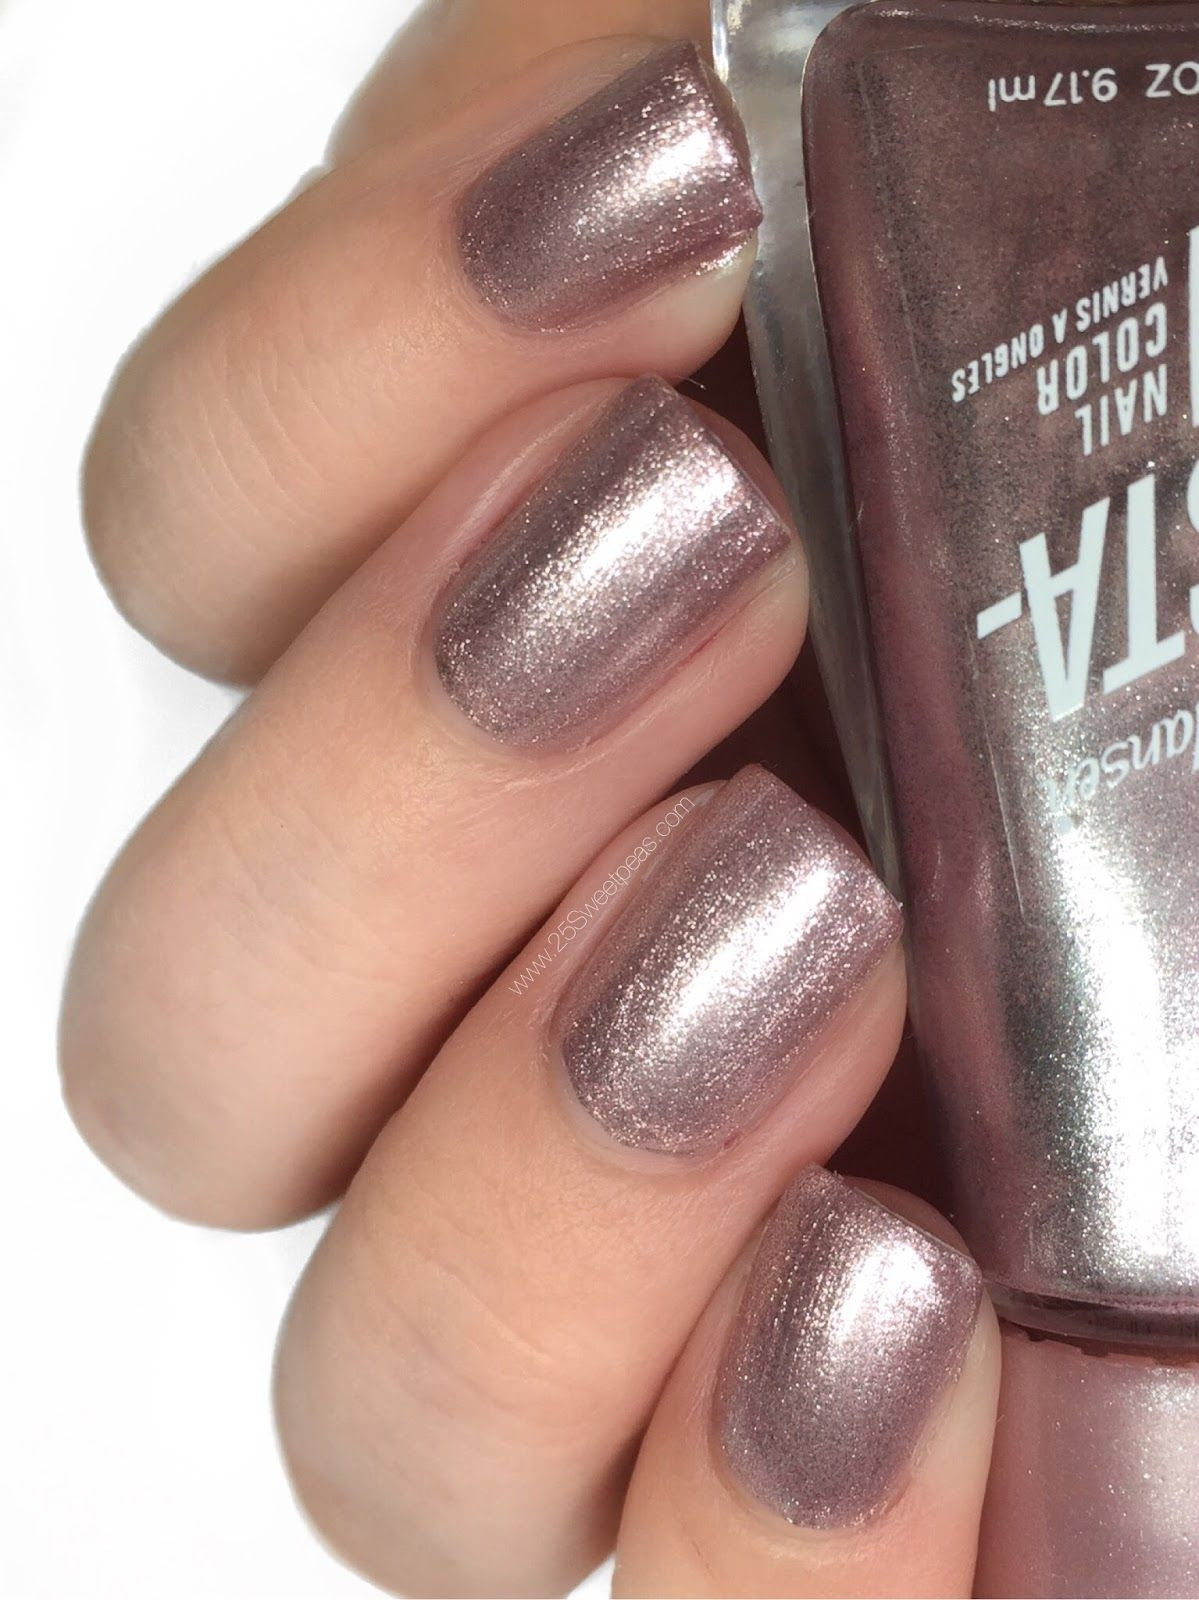 Sally Hansen Insta-Dri | Sally hansen and Sally